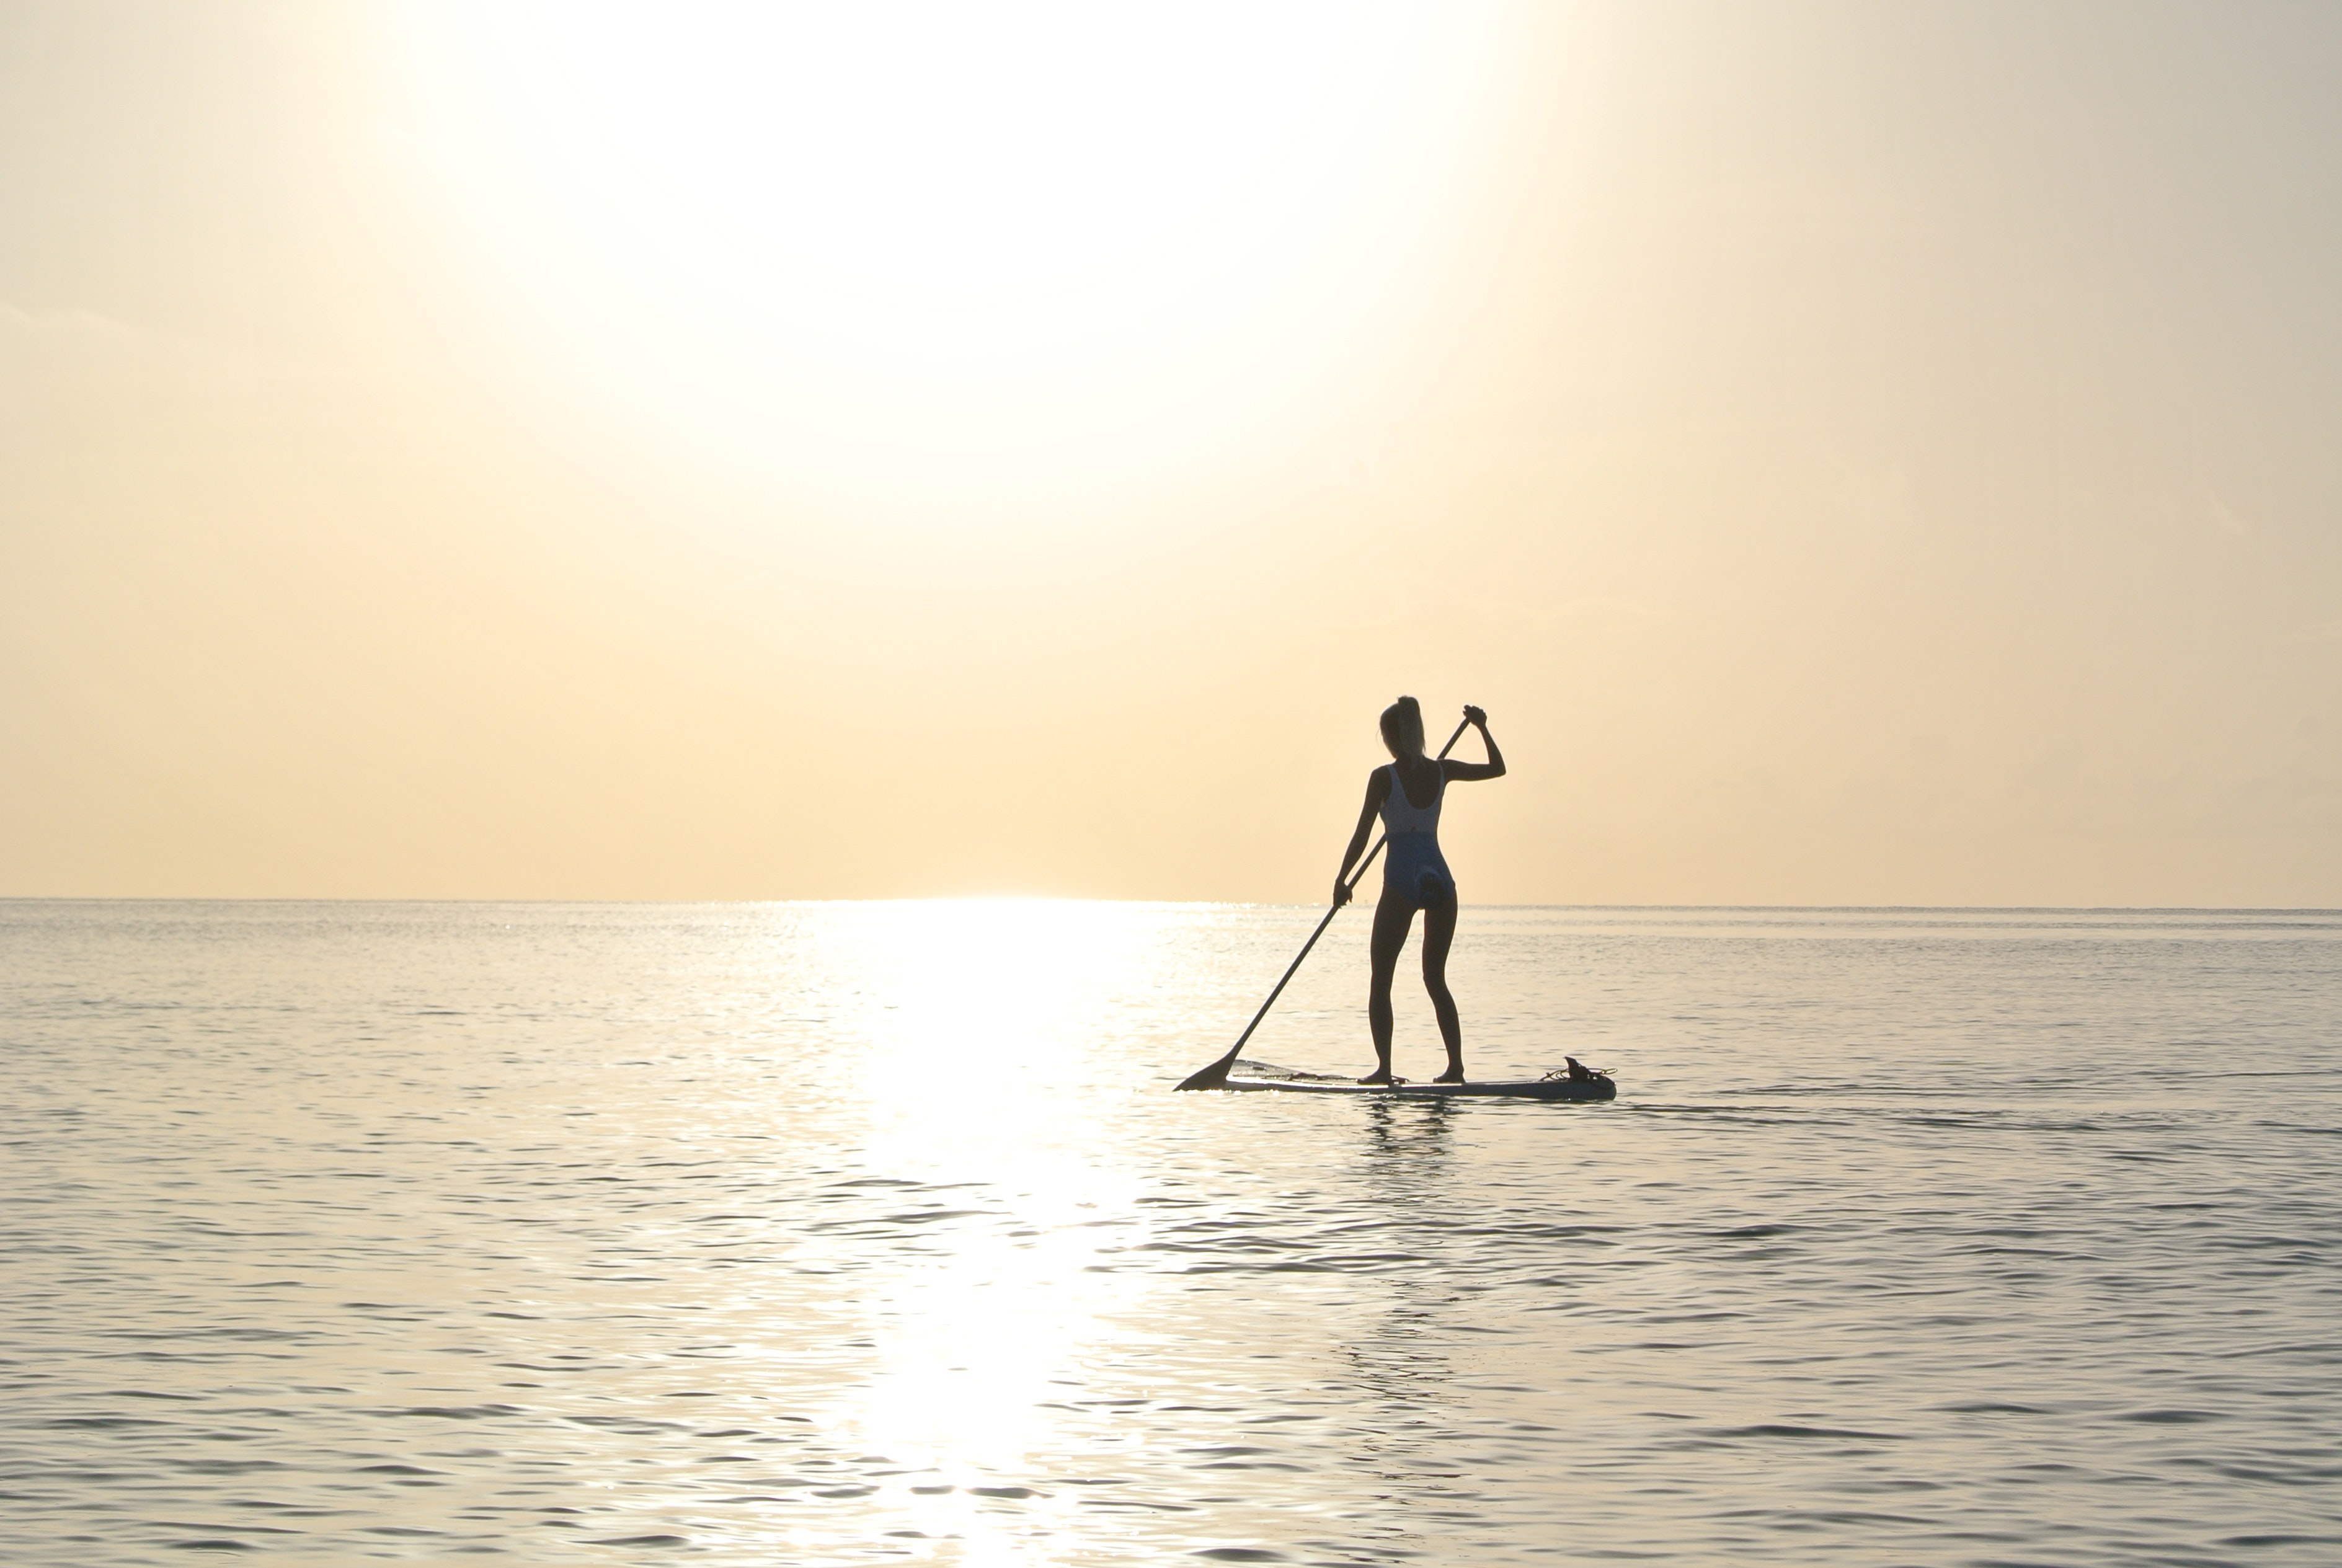 Woman standing on paddleboard on body of water photo